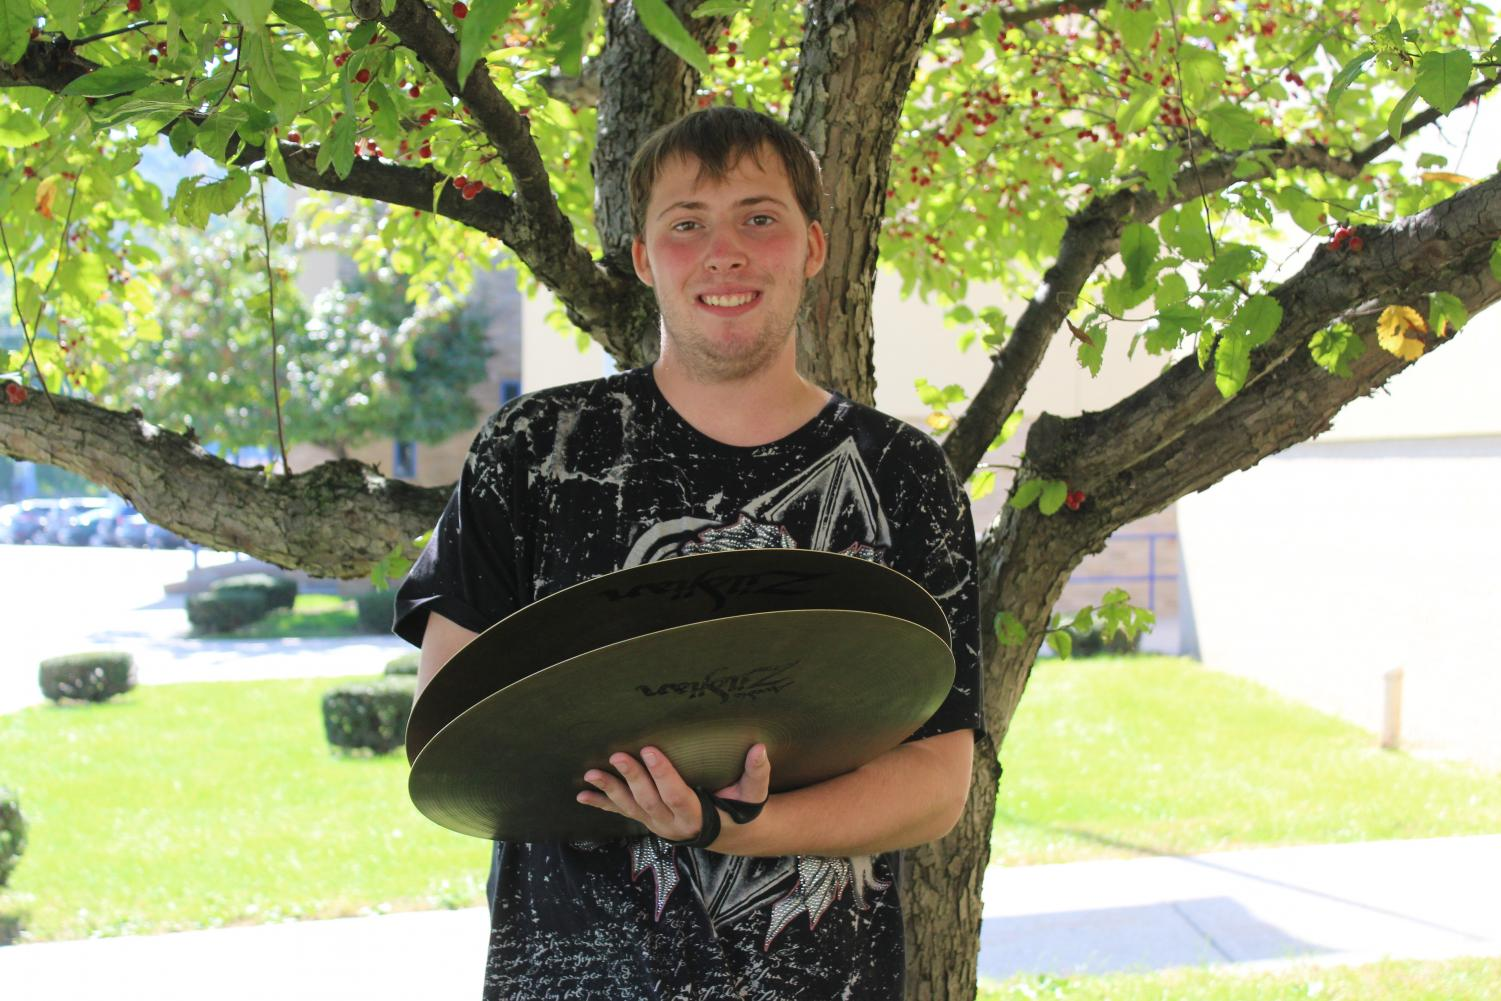 Tyler Long has been growing as a percussionist in the marching band.